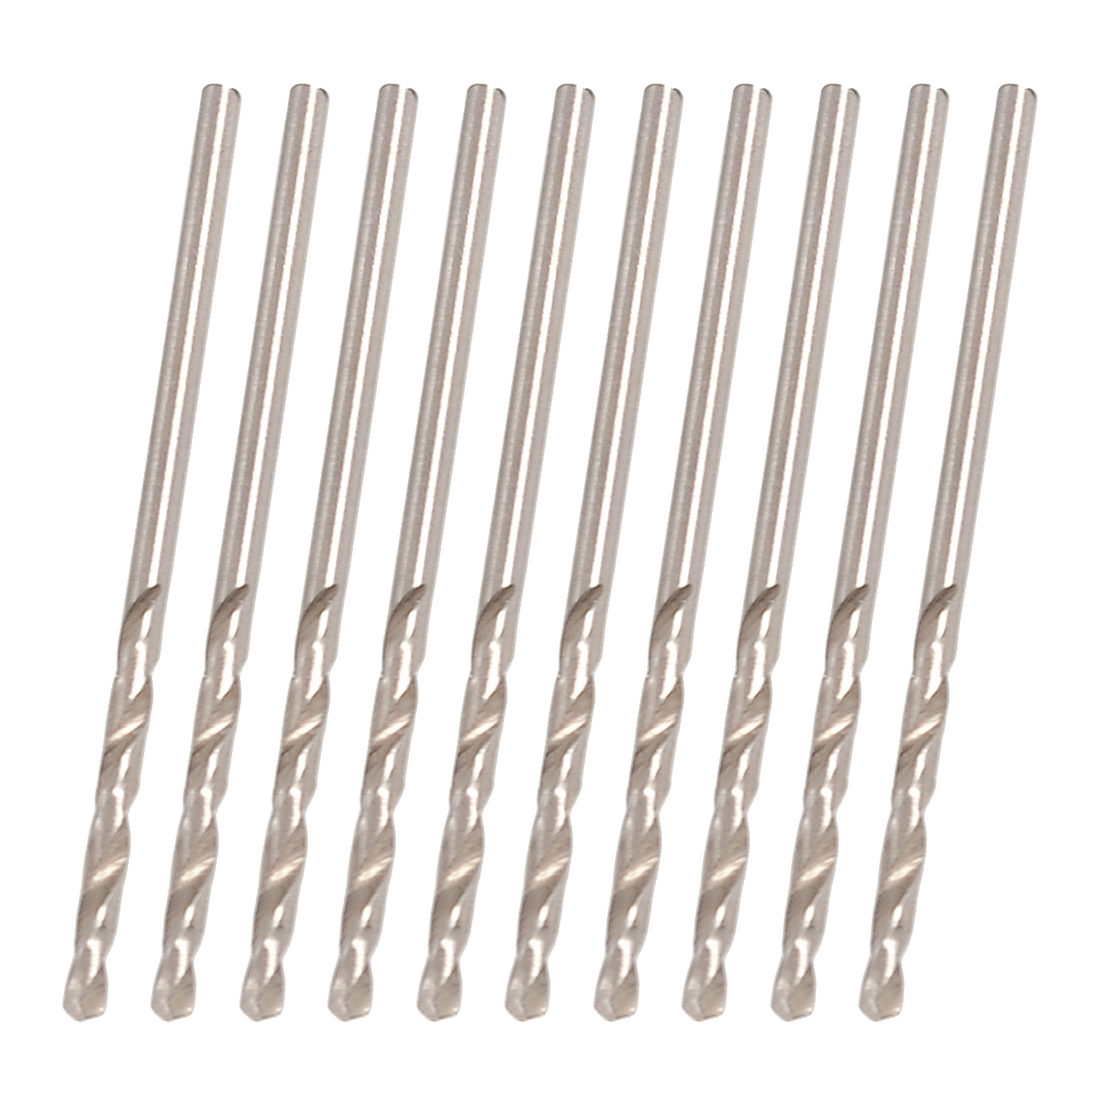 Replacement 1.8mm Dia Spiral Flute HSS Twist Electric Drill Bit 10 Pcs